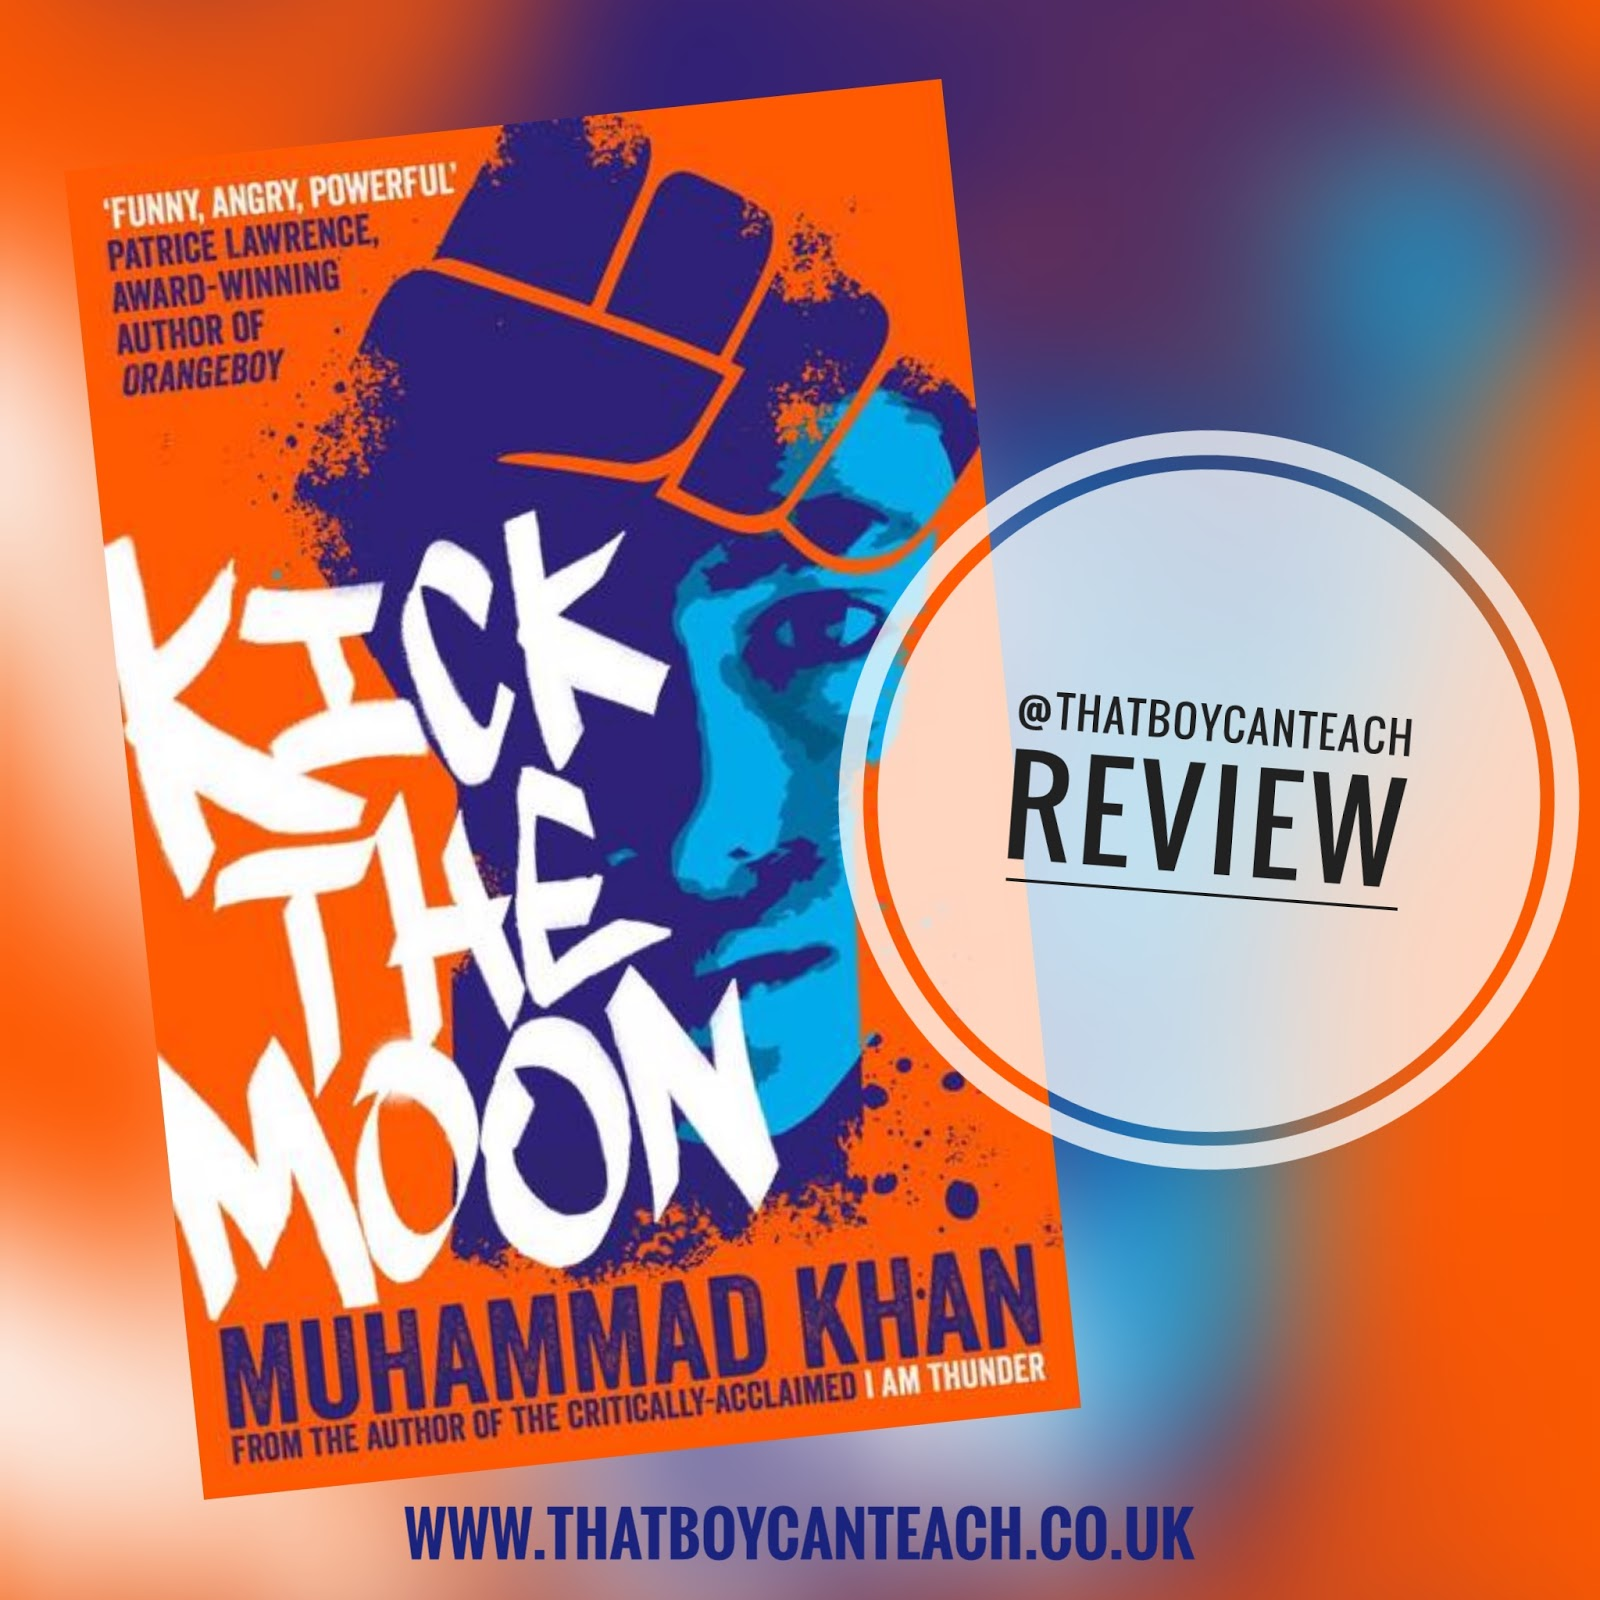 Book Review: 'Kick the Moon' by Muhammad Khan |That Boy Can